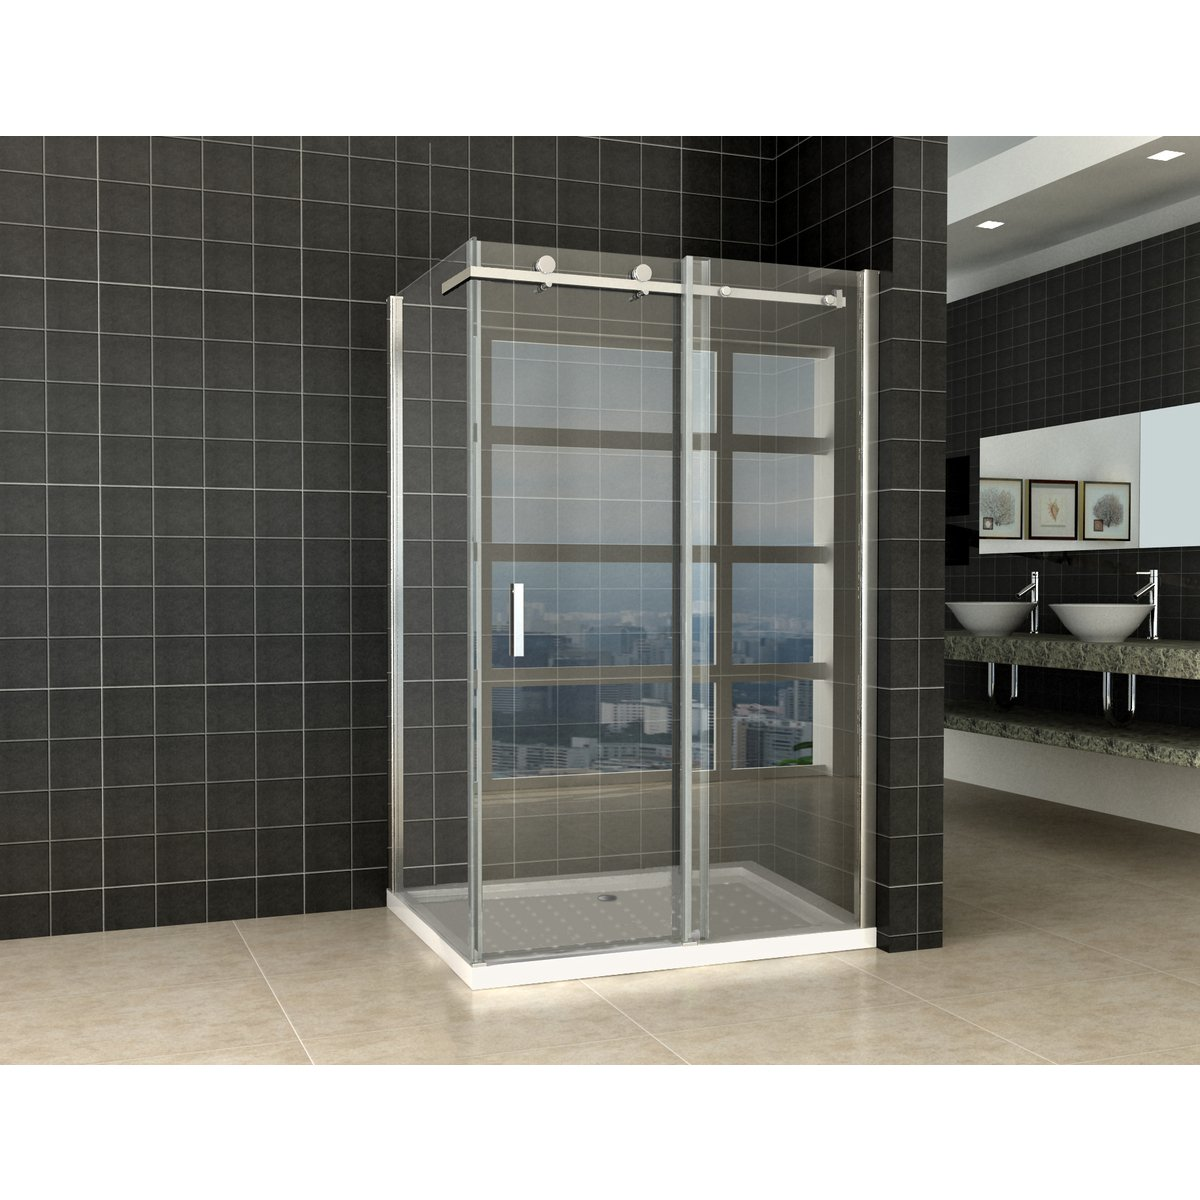 praya shower porte de douche coulissante avec paroi lat rale 120x90x200cm chrome vitre nano 8mm. Black Bedroom Furniture Sets. Home Design Ideas